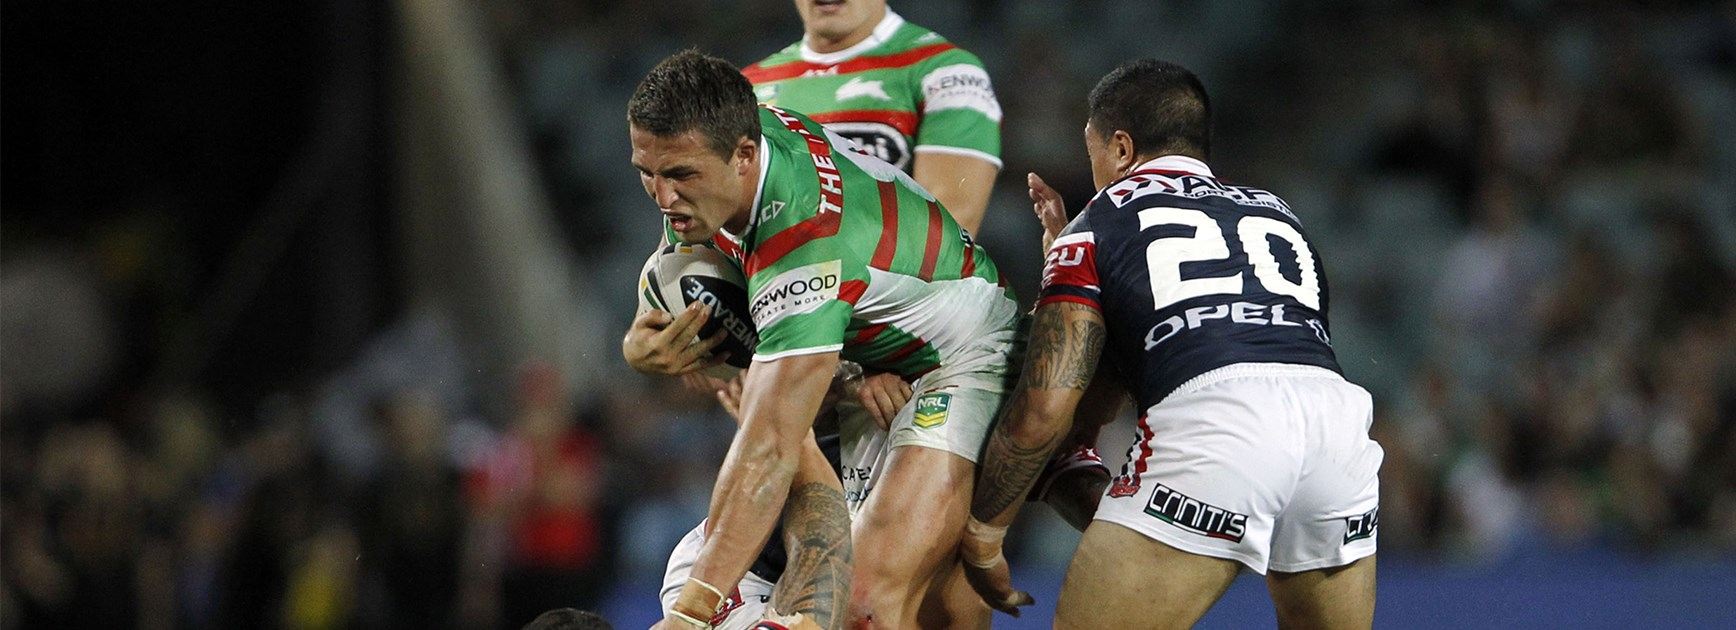 The Best of 'Slamming' Sam Burgess